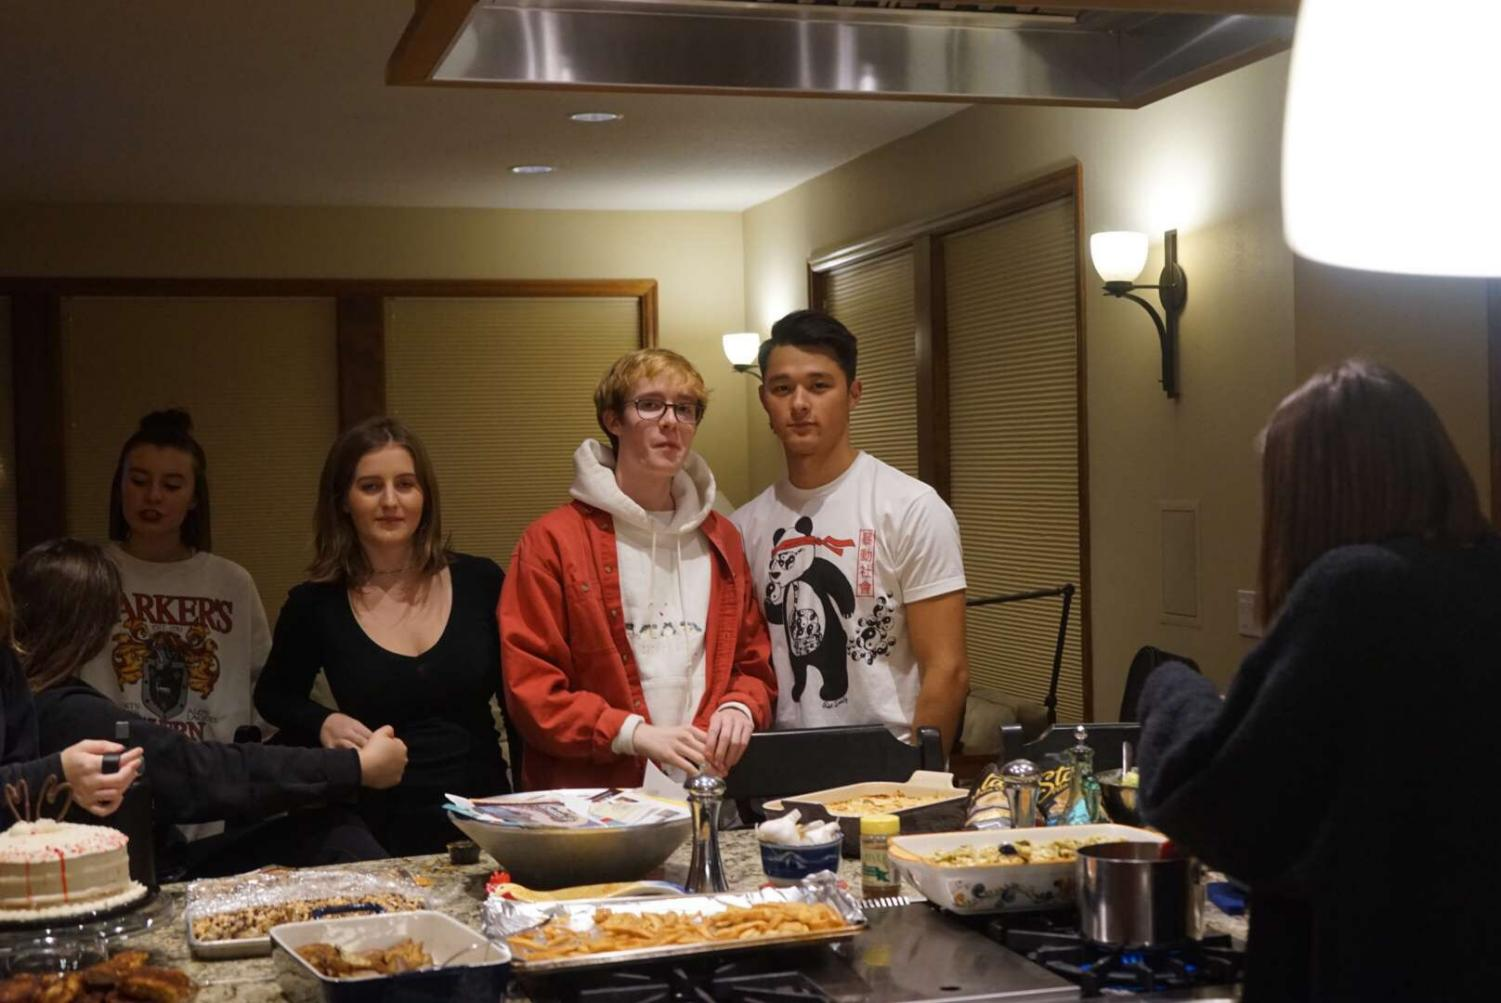 Friends, Honour Colby, Alaina Bekebrede, Ian Flynn, and Hunter Steidler enjoying their friendsgiving meal together